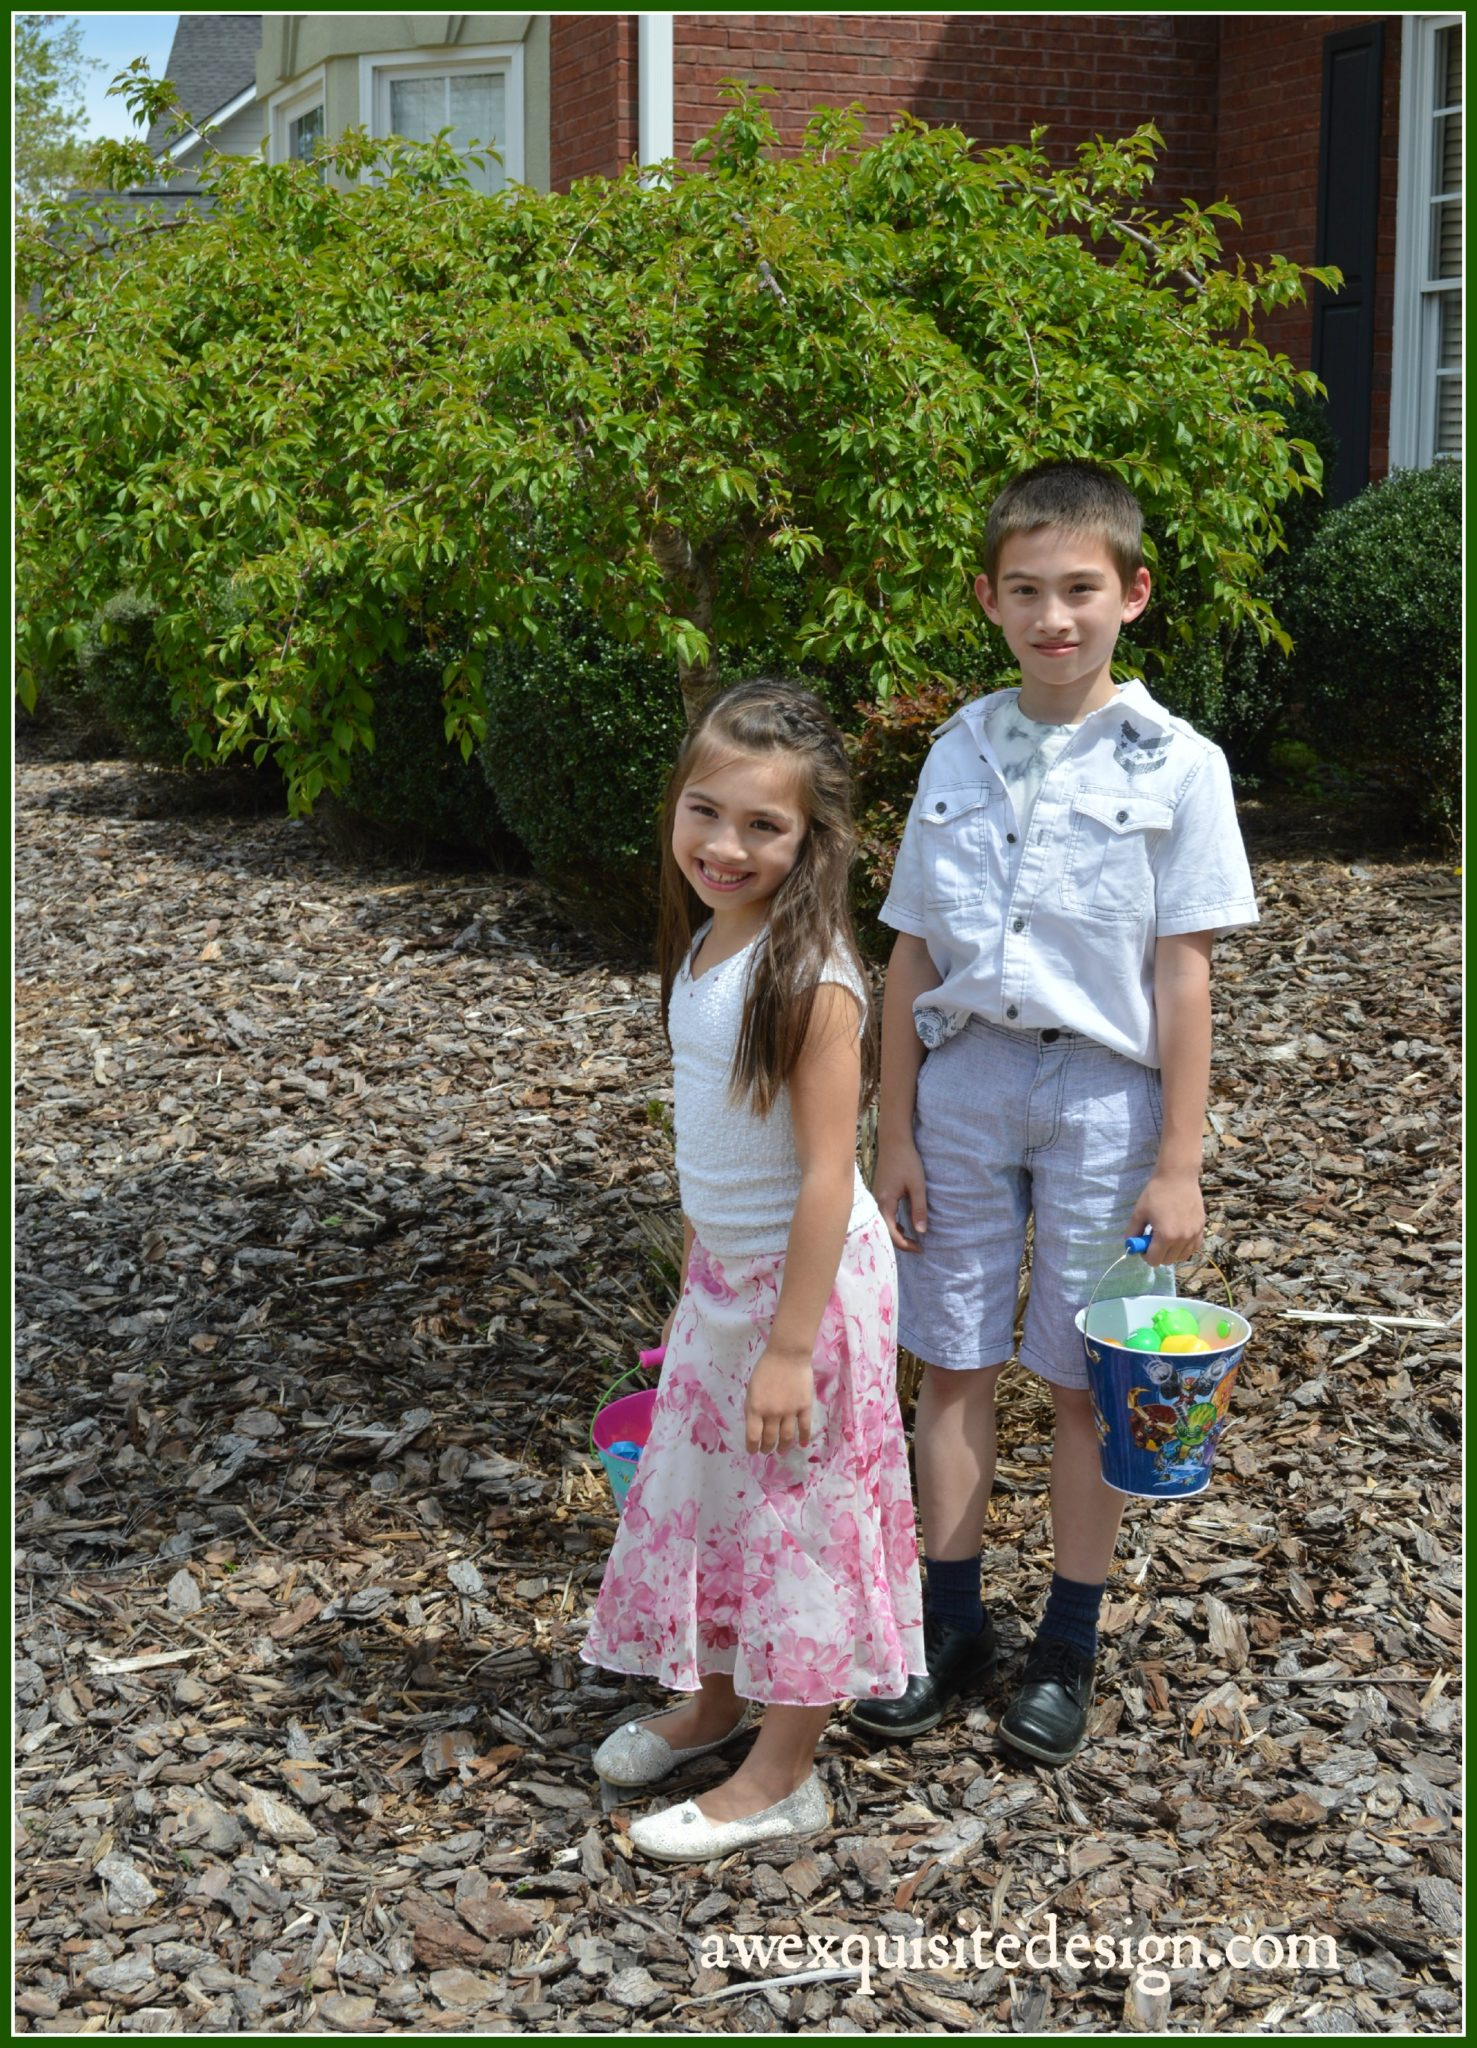 Kids posing before the anticipated egg hunt.